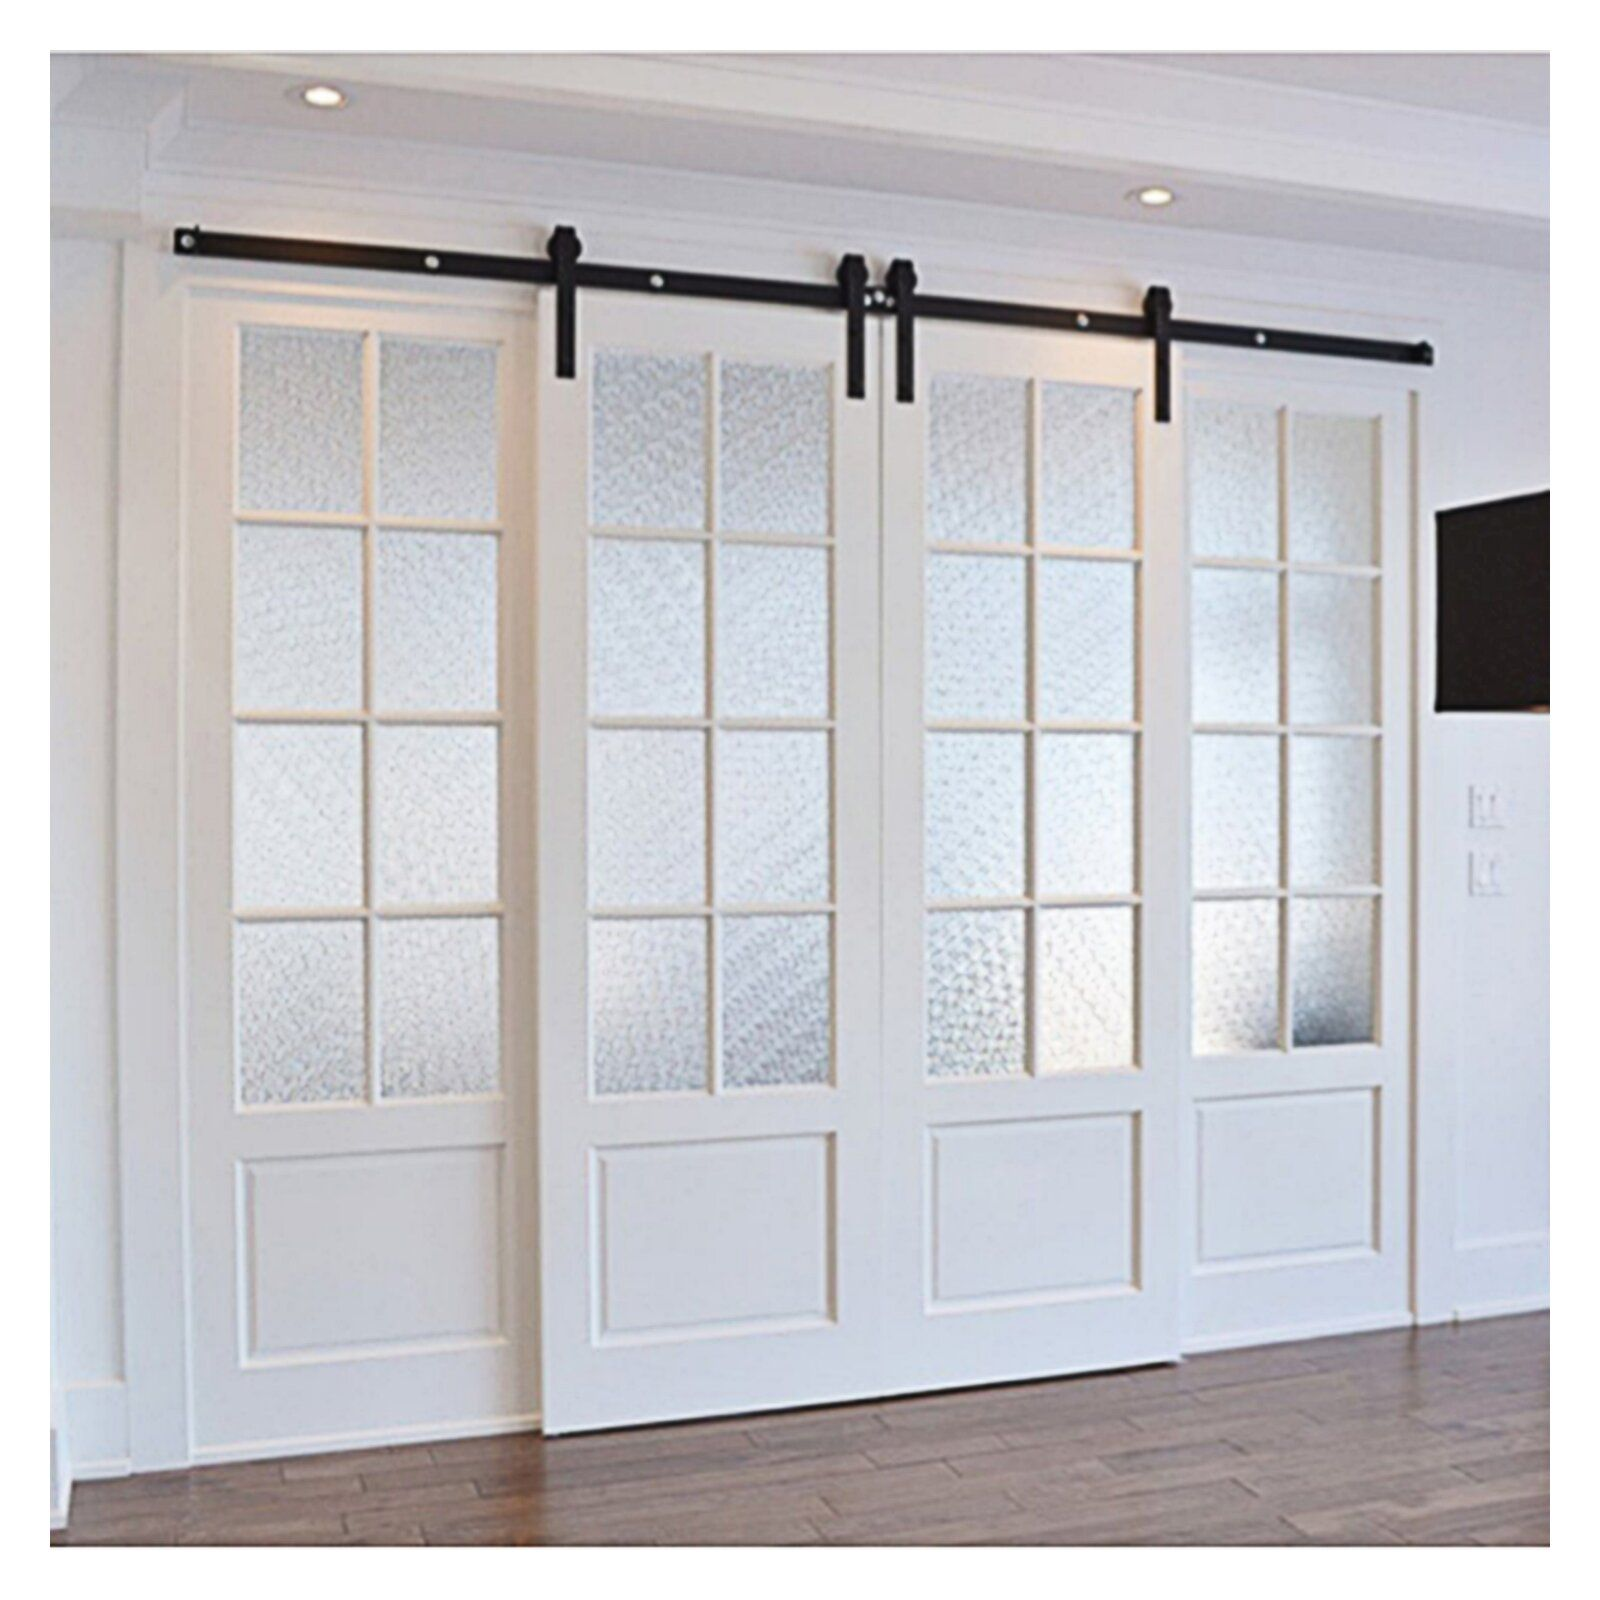 Classic Design Standard Double Track Barn Door Hardware Kit French Doors Interior Sliding Doors Interior Sliding Barn Door Hardware